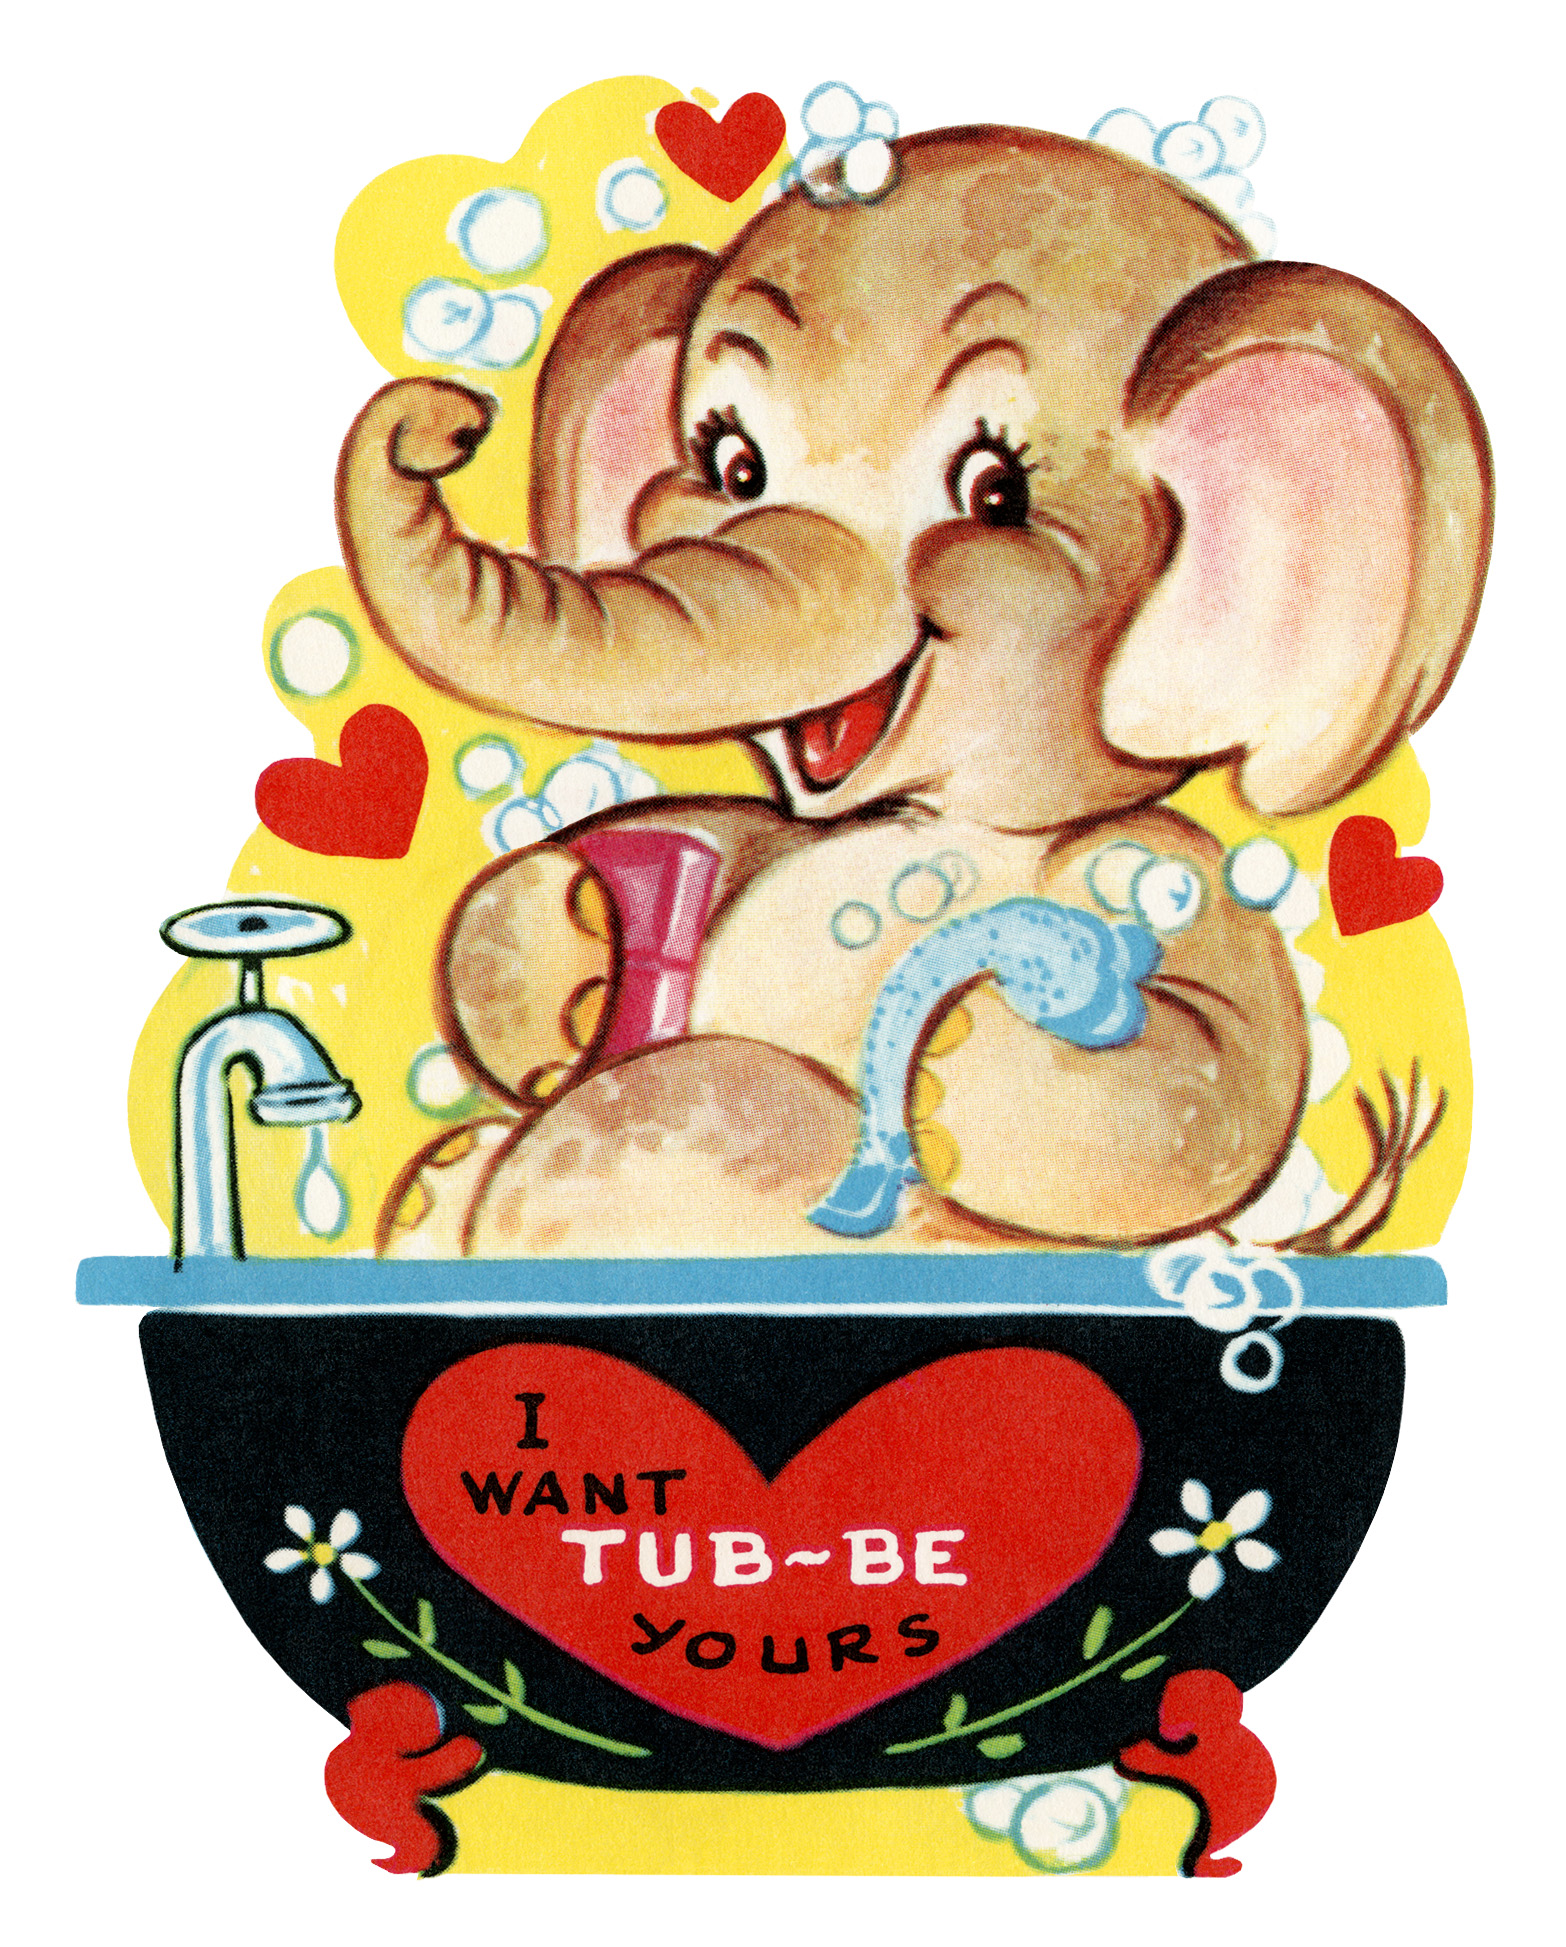 photograph relating to Valentine Clip Art Free Printable referred to as No cost Printable Traditional Valentine Elephant within just Bathtub - Previous